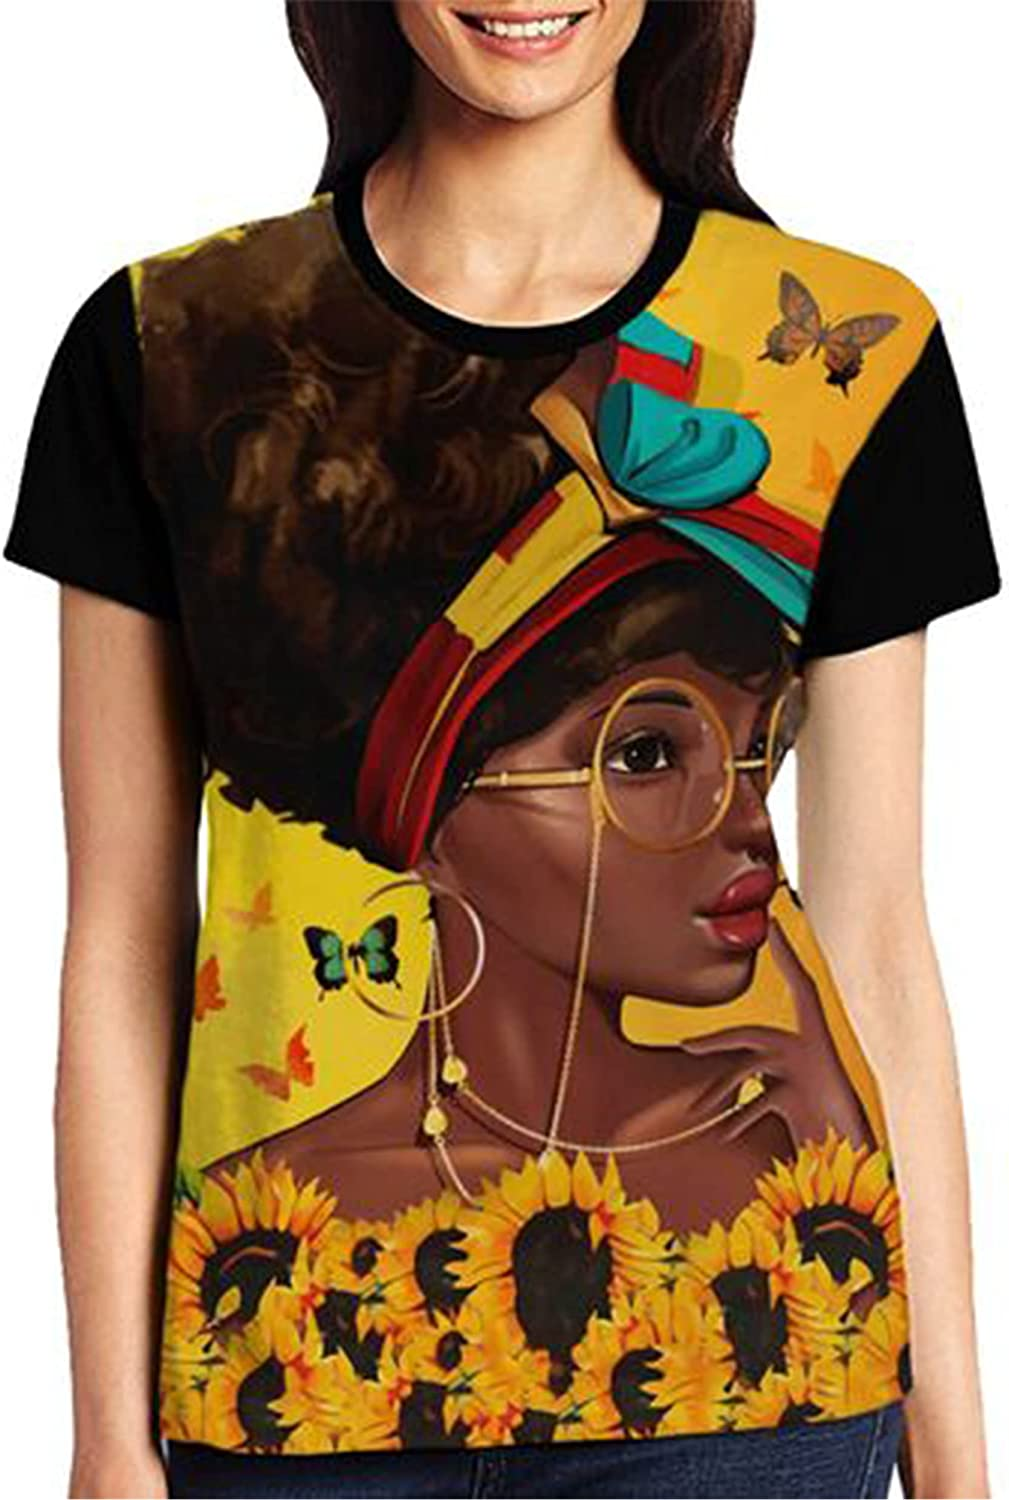 Wtonlaide Women's Fashion Max 57% OFF T-Shirt In a popularity Crown Piece Girl Prin Front 3D